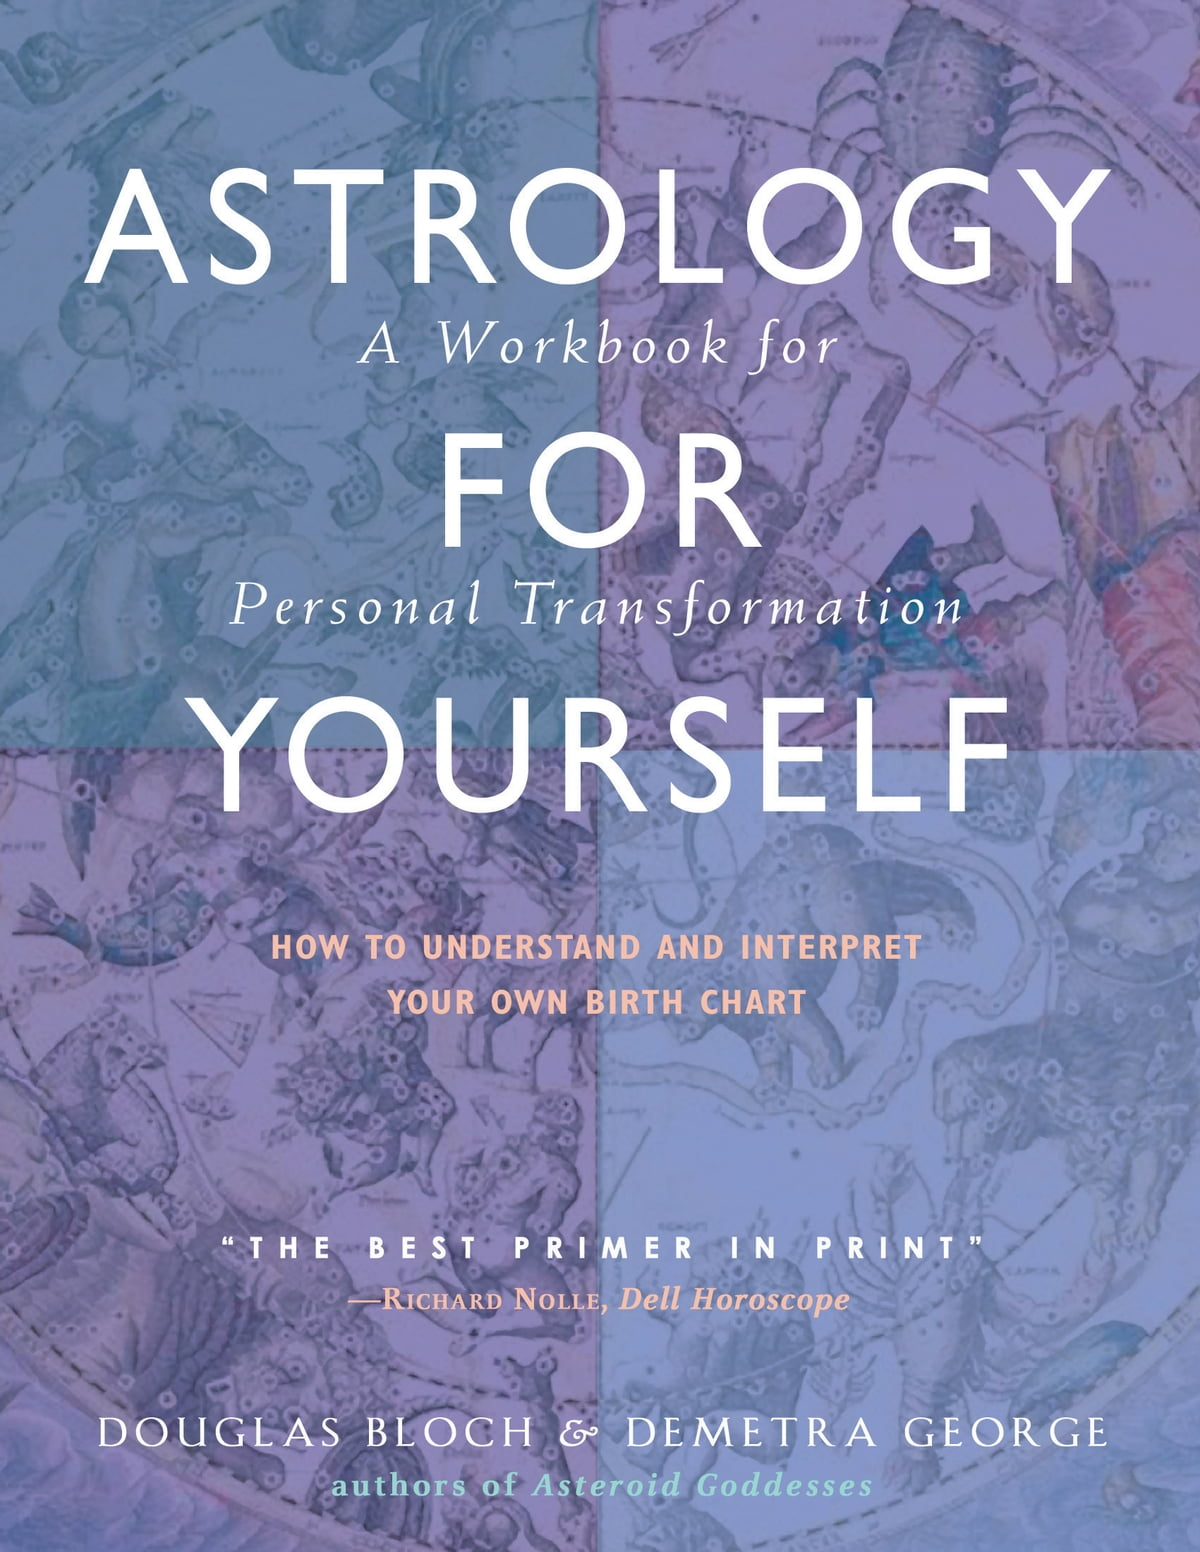 Astrology for yourself ebook by demetra george 9780892546657 astrology for yourself ebook by demetra george 9780892546657 rakuten kobo geenschuldenfo Images